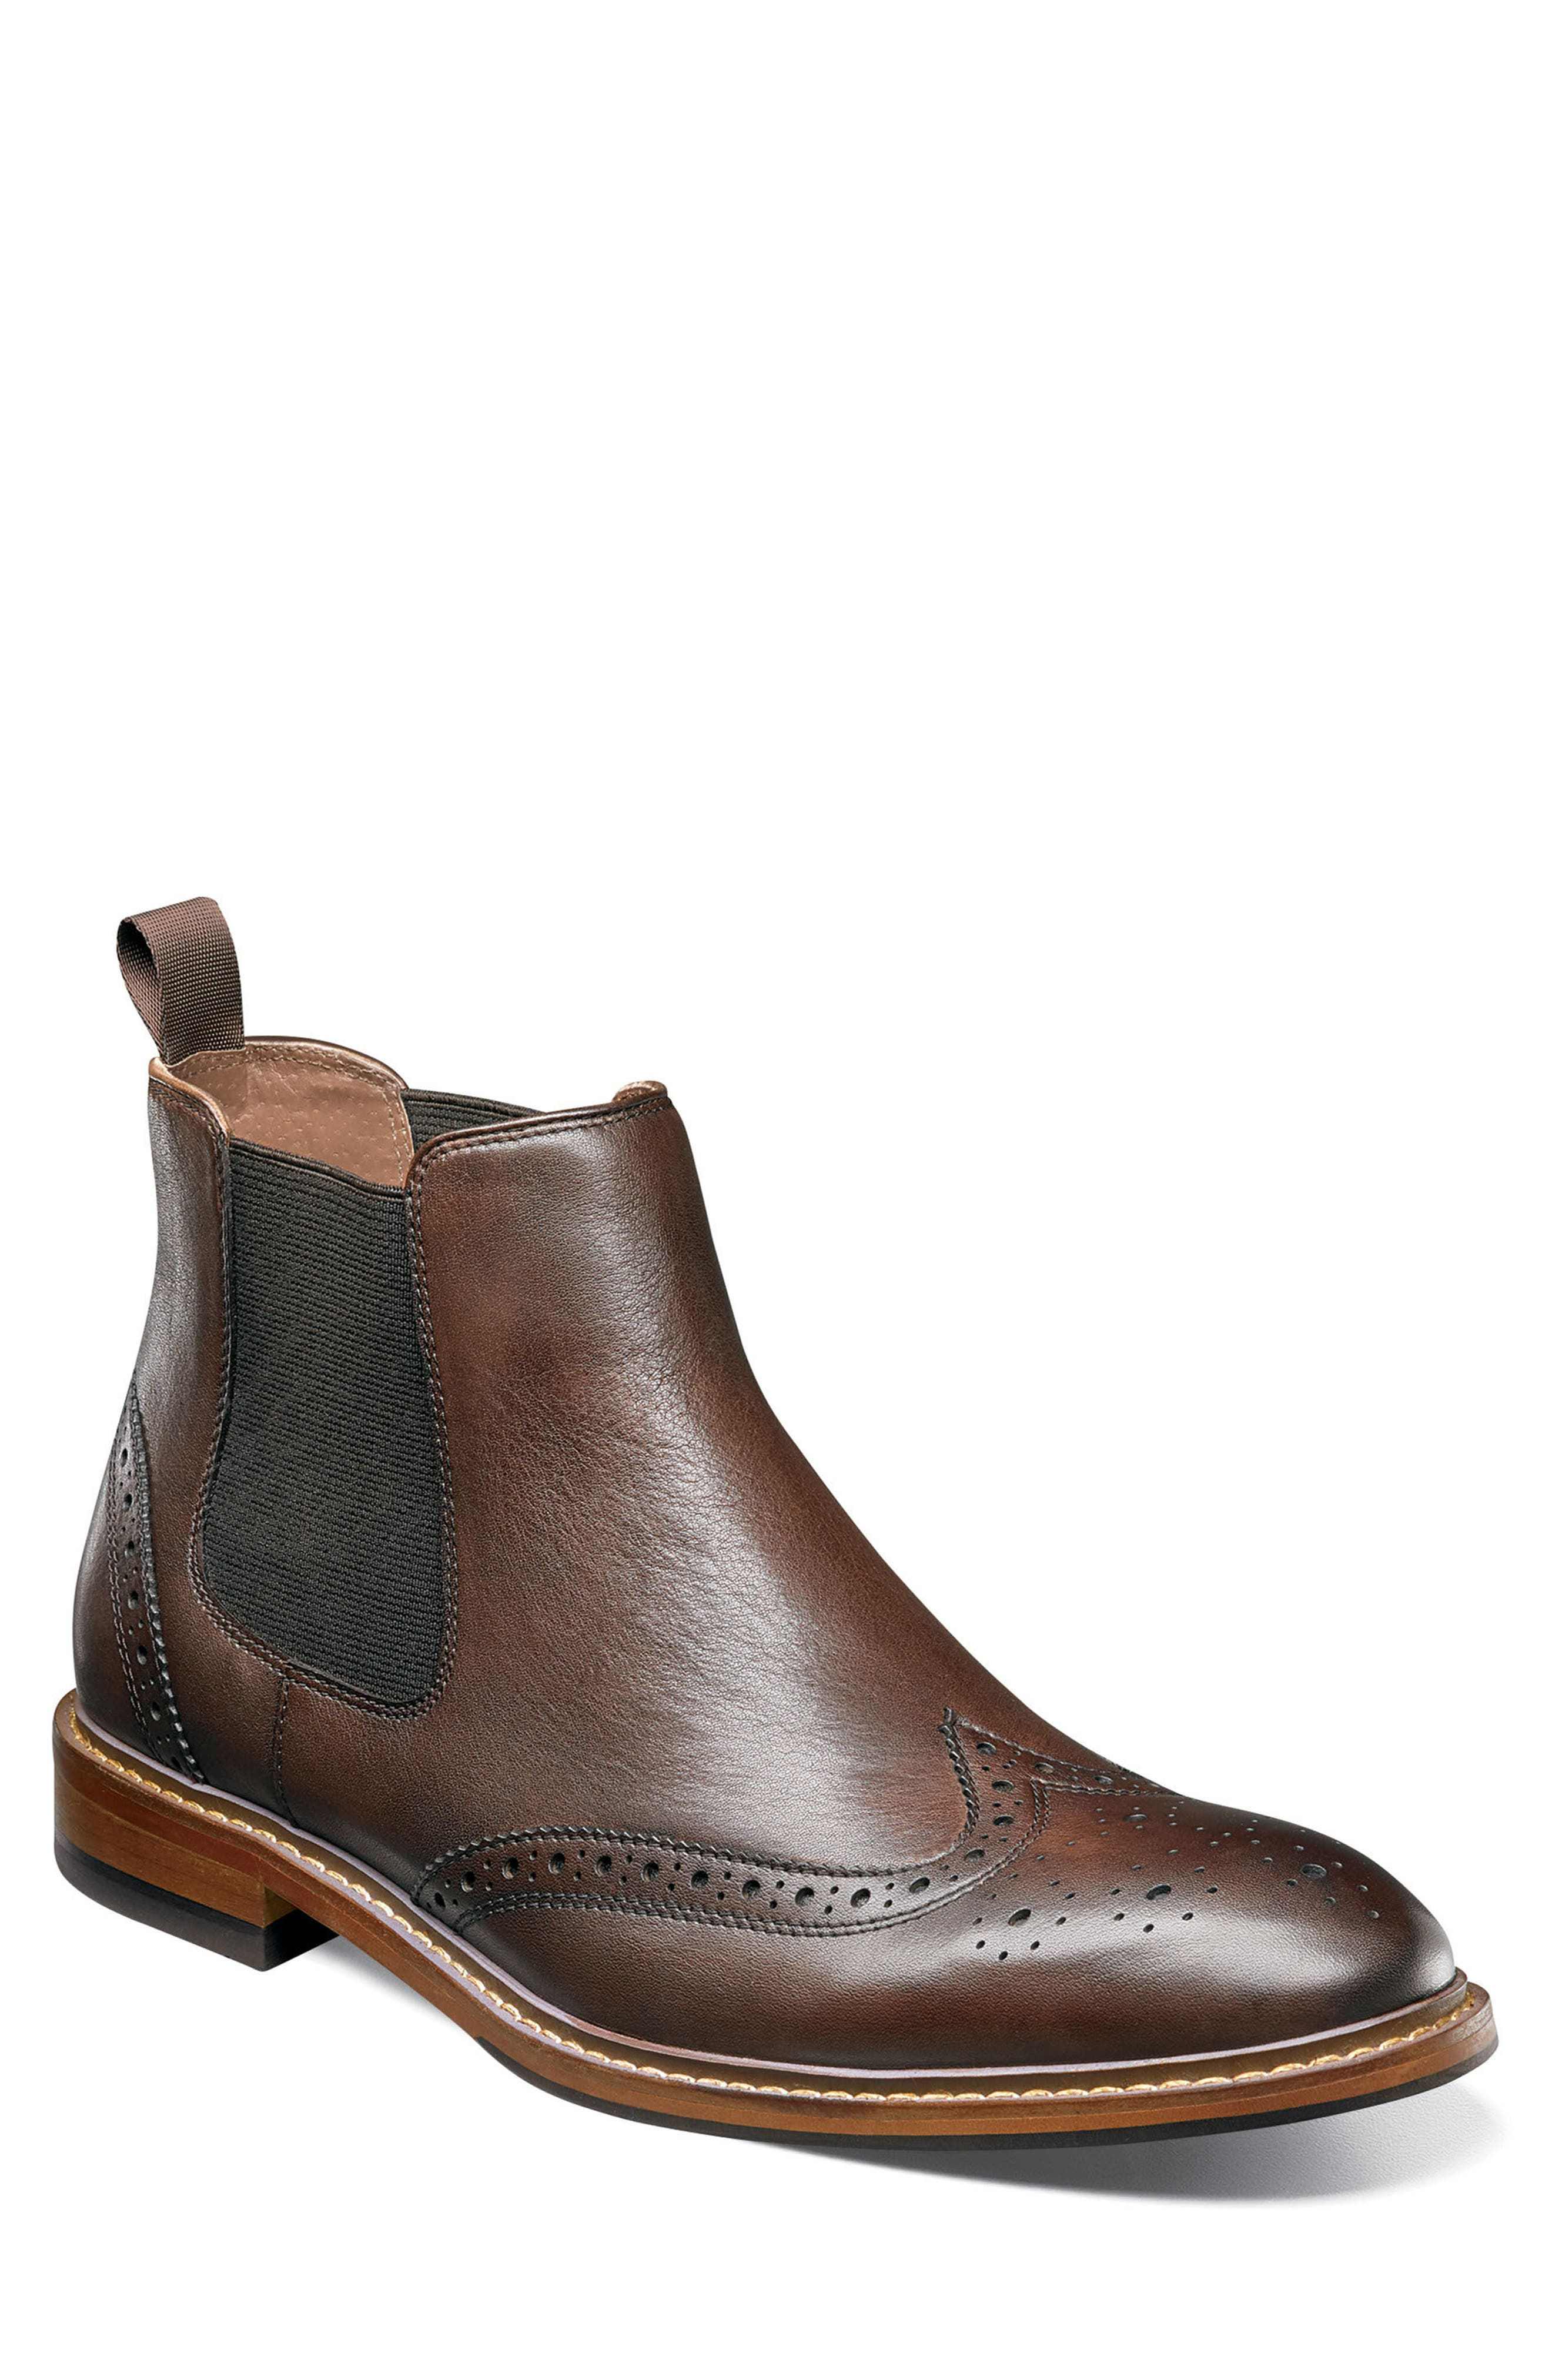 Sheffield Chelsea Boot,                         Main,                         color,